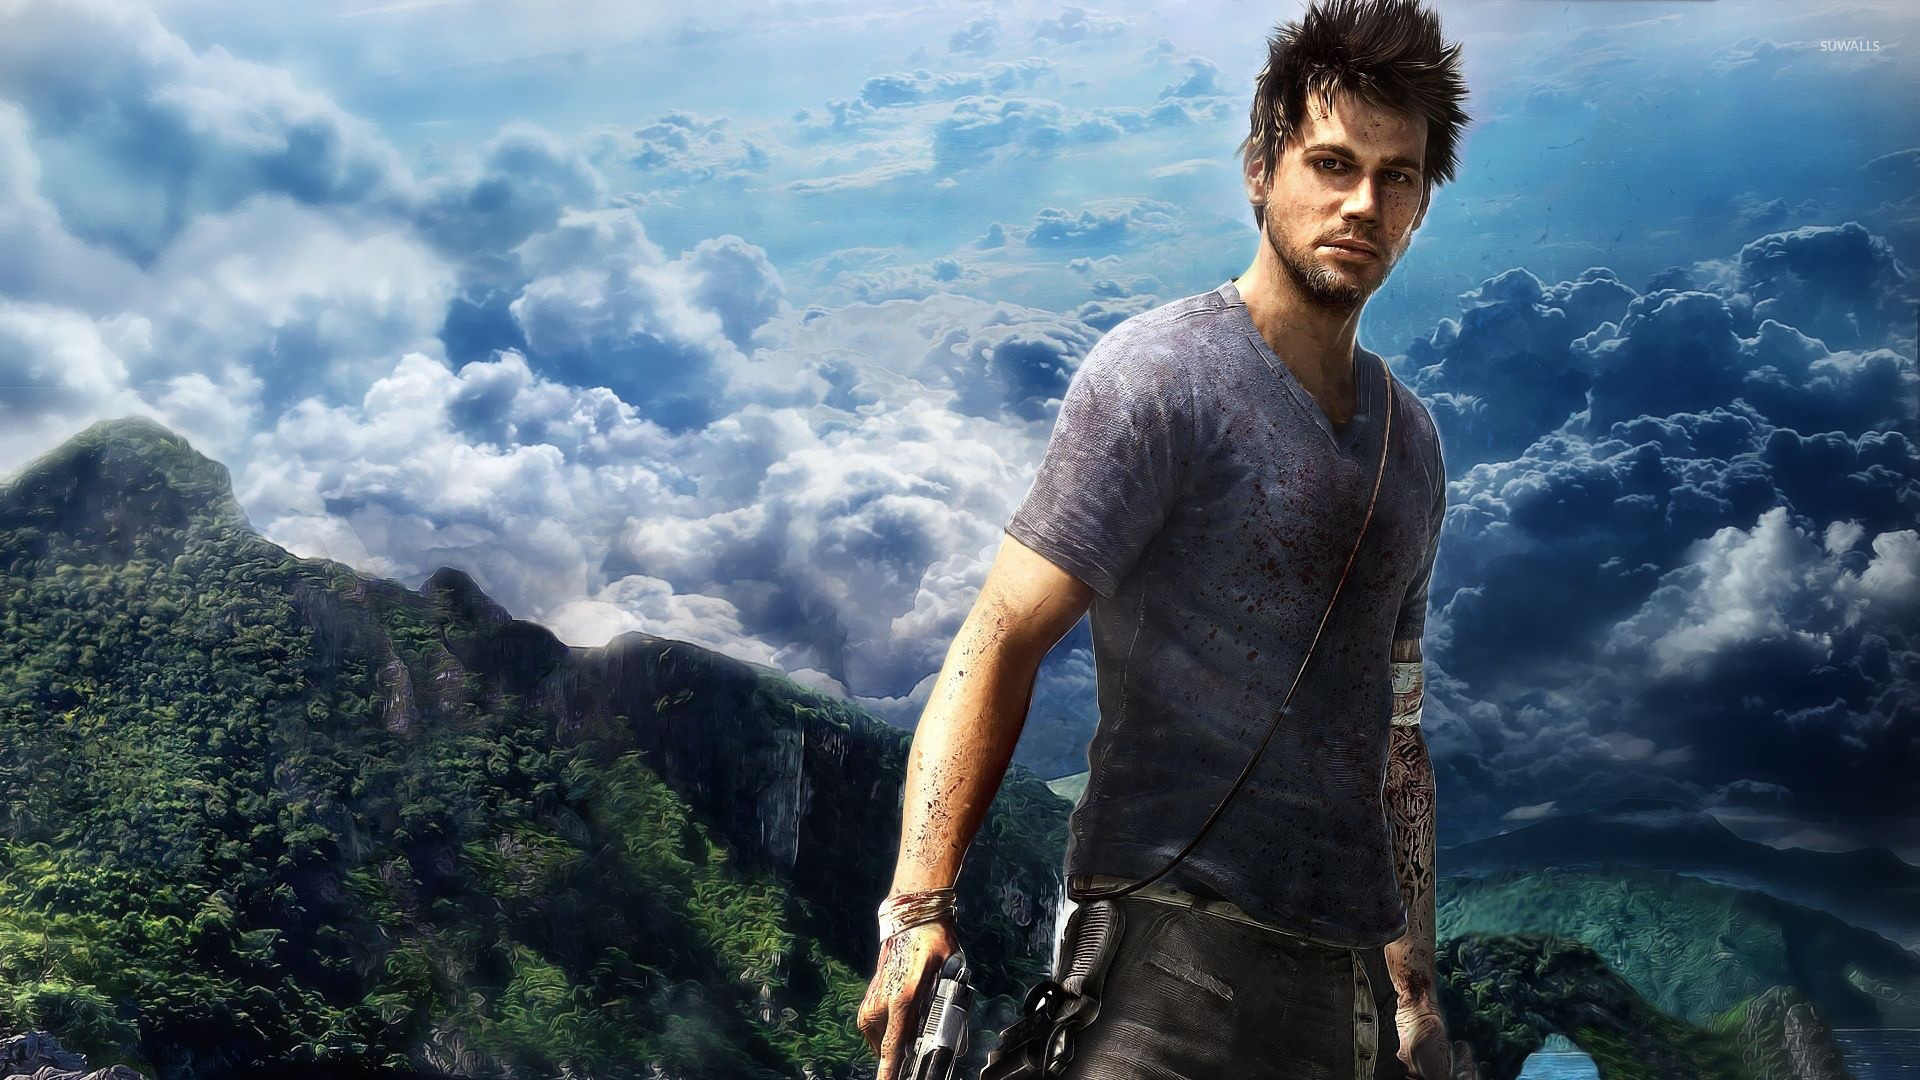 Jason Brody   Far Cry 3 wallpaper   Game wallpapers   18225 1920x1080